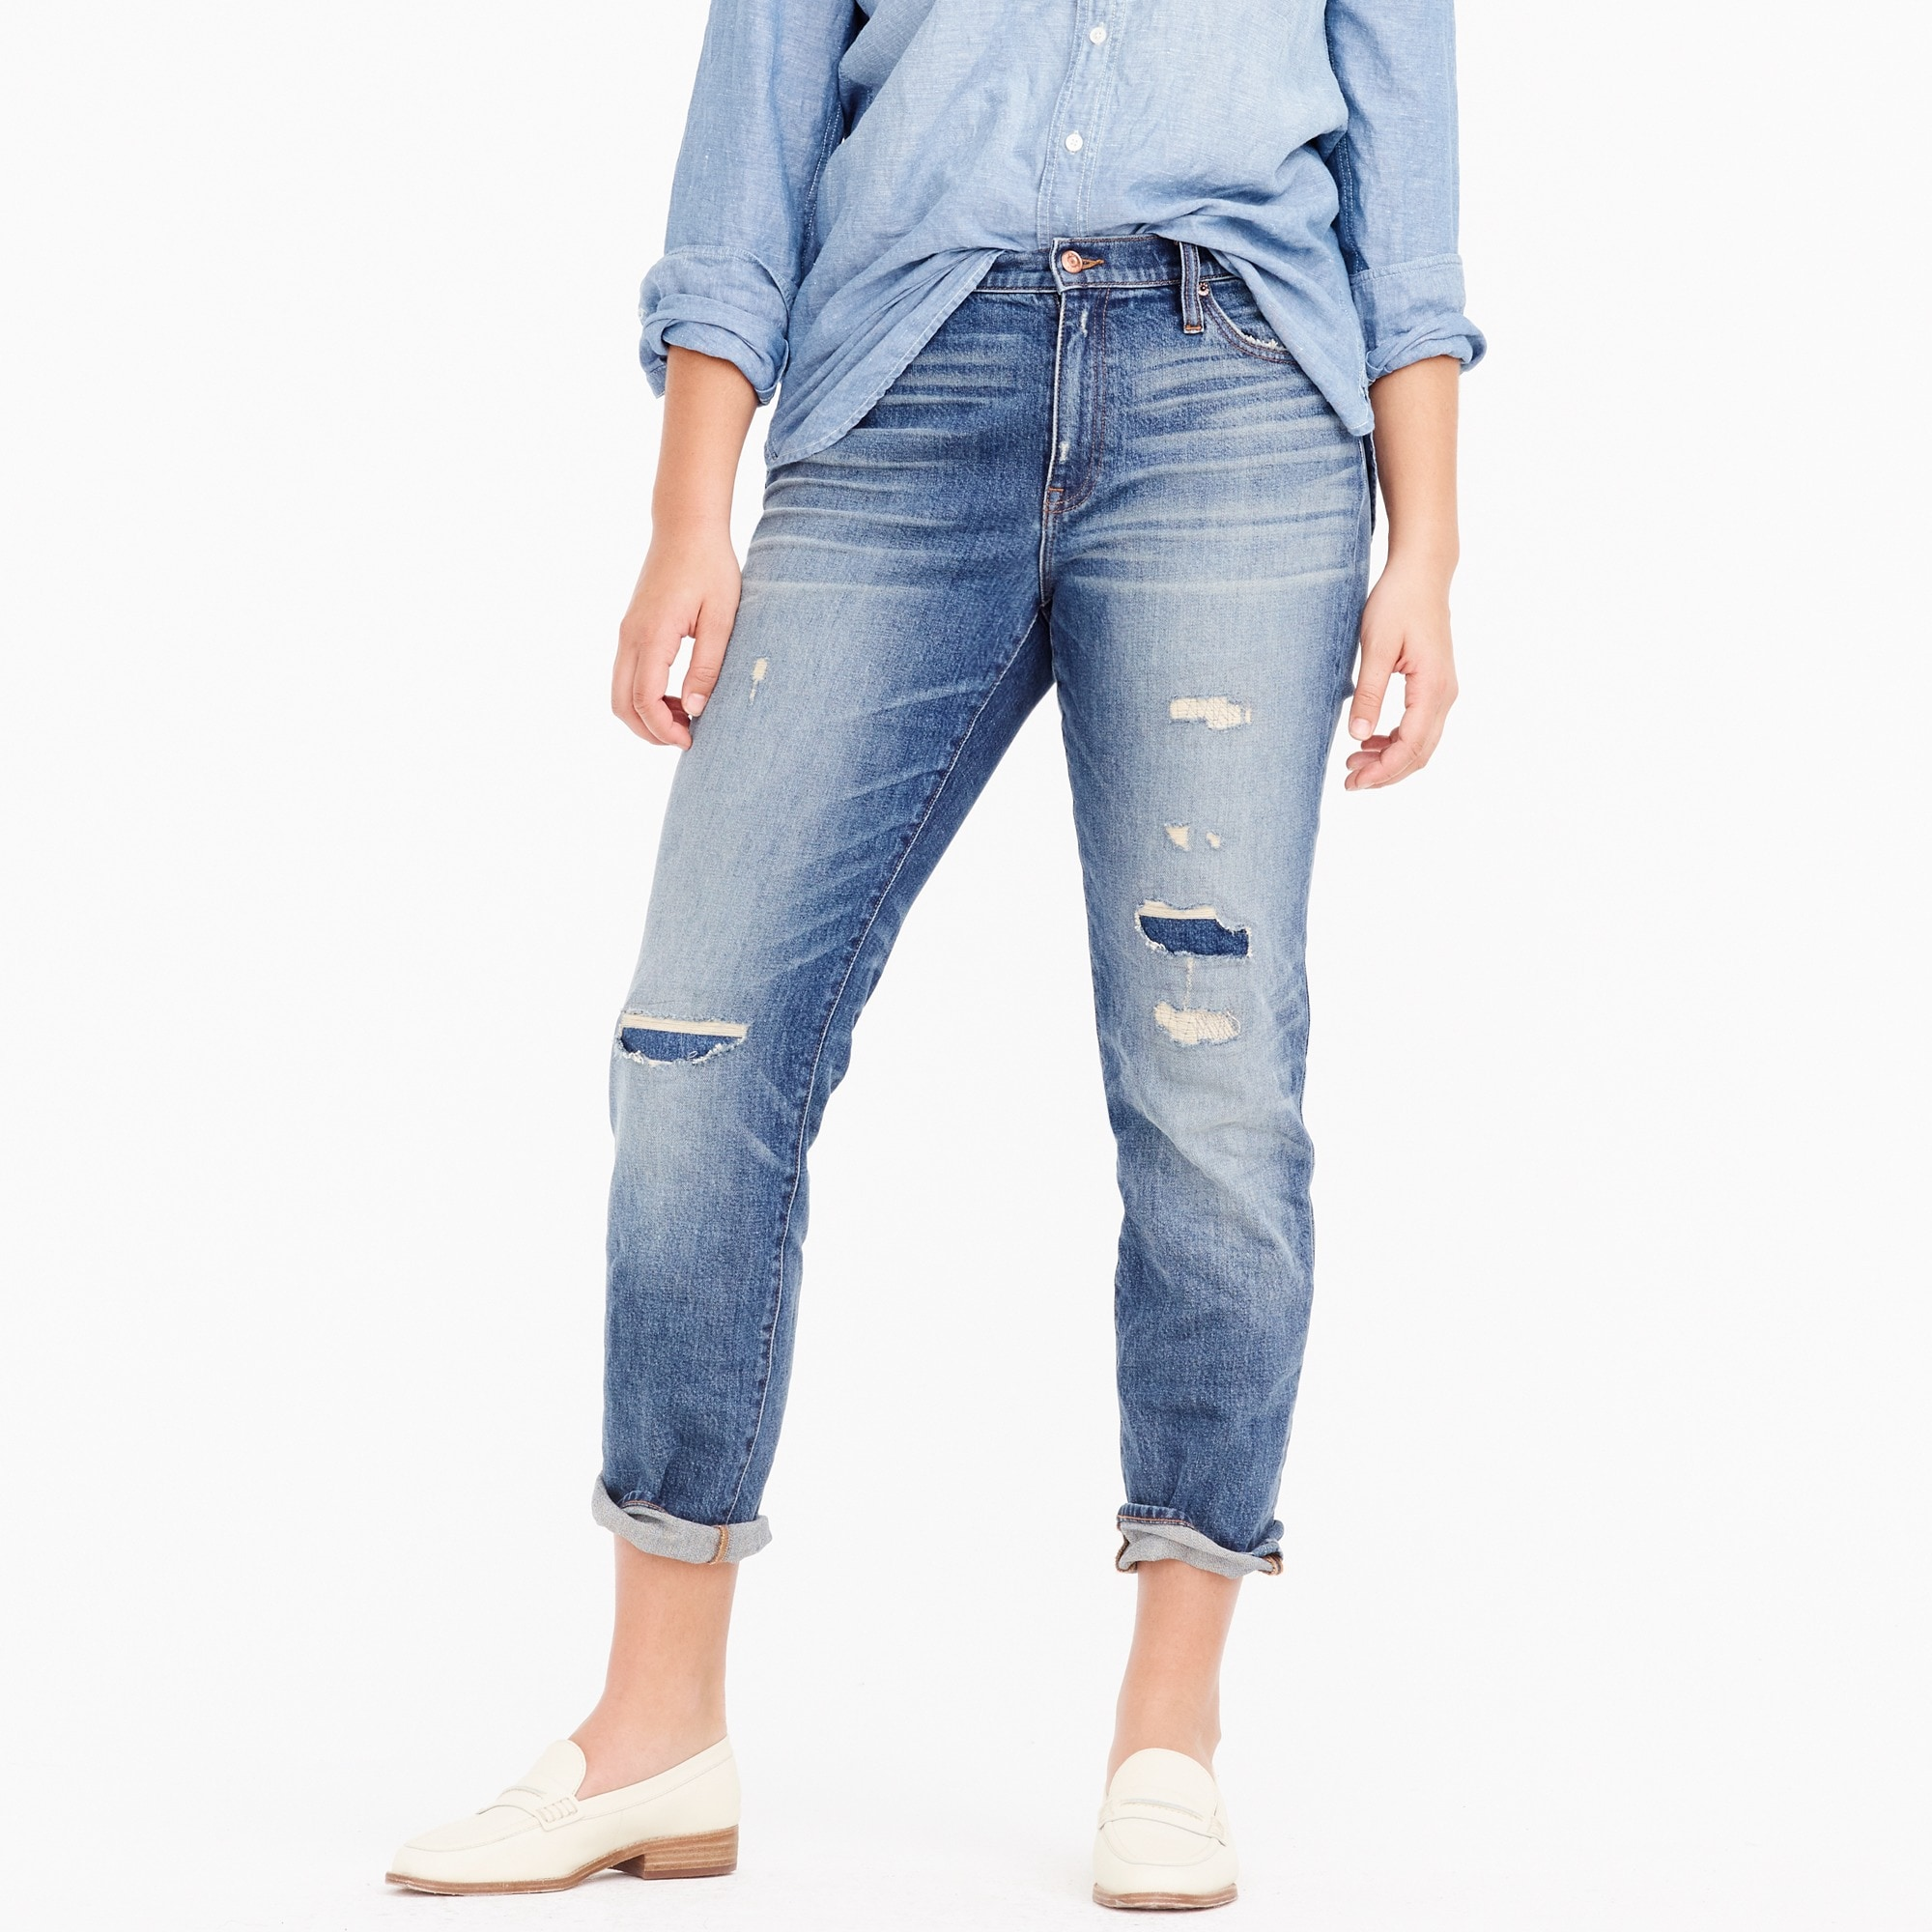 slim boyfriend jean in charles wash : women boy